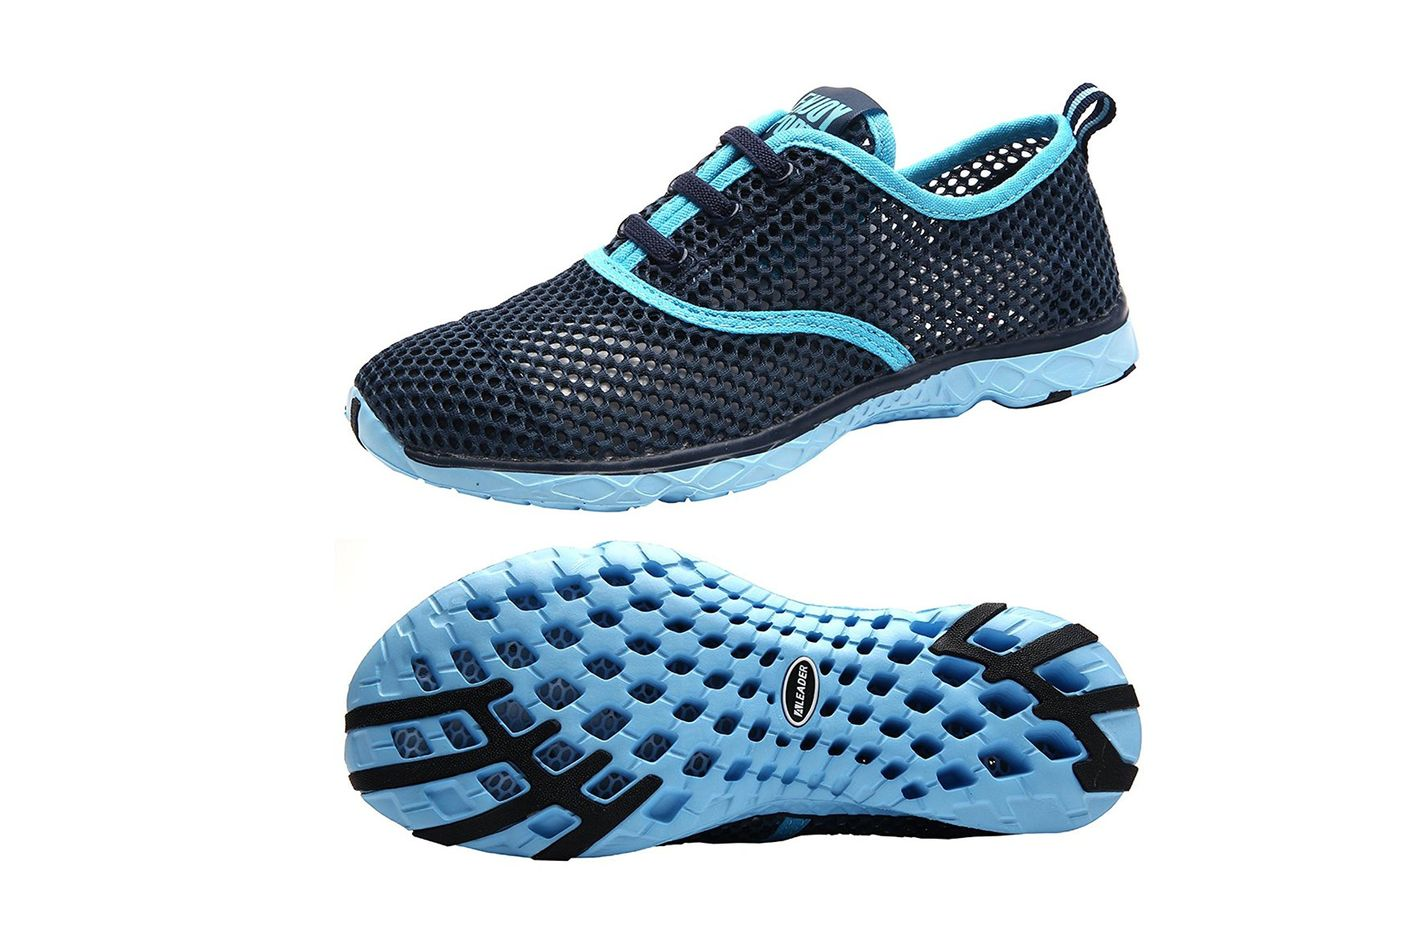 6b0f0fc3d96b1 Aleader Women s Quick Drying Aqua Water Shoes